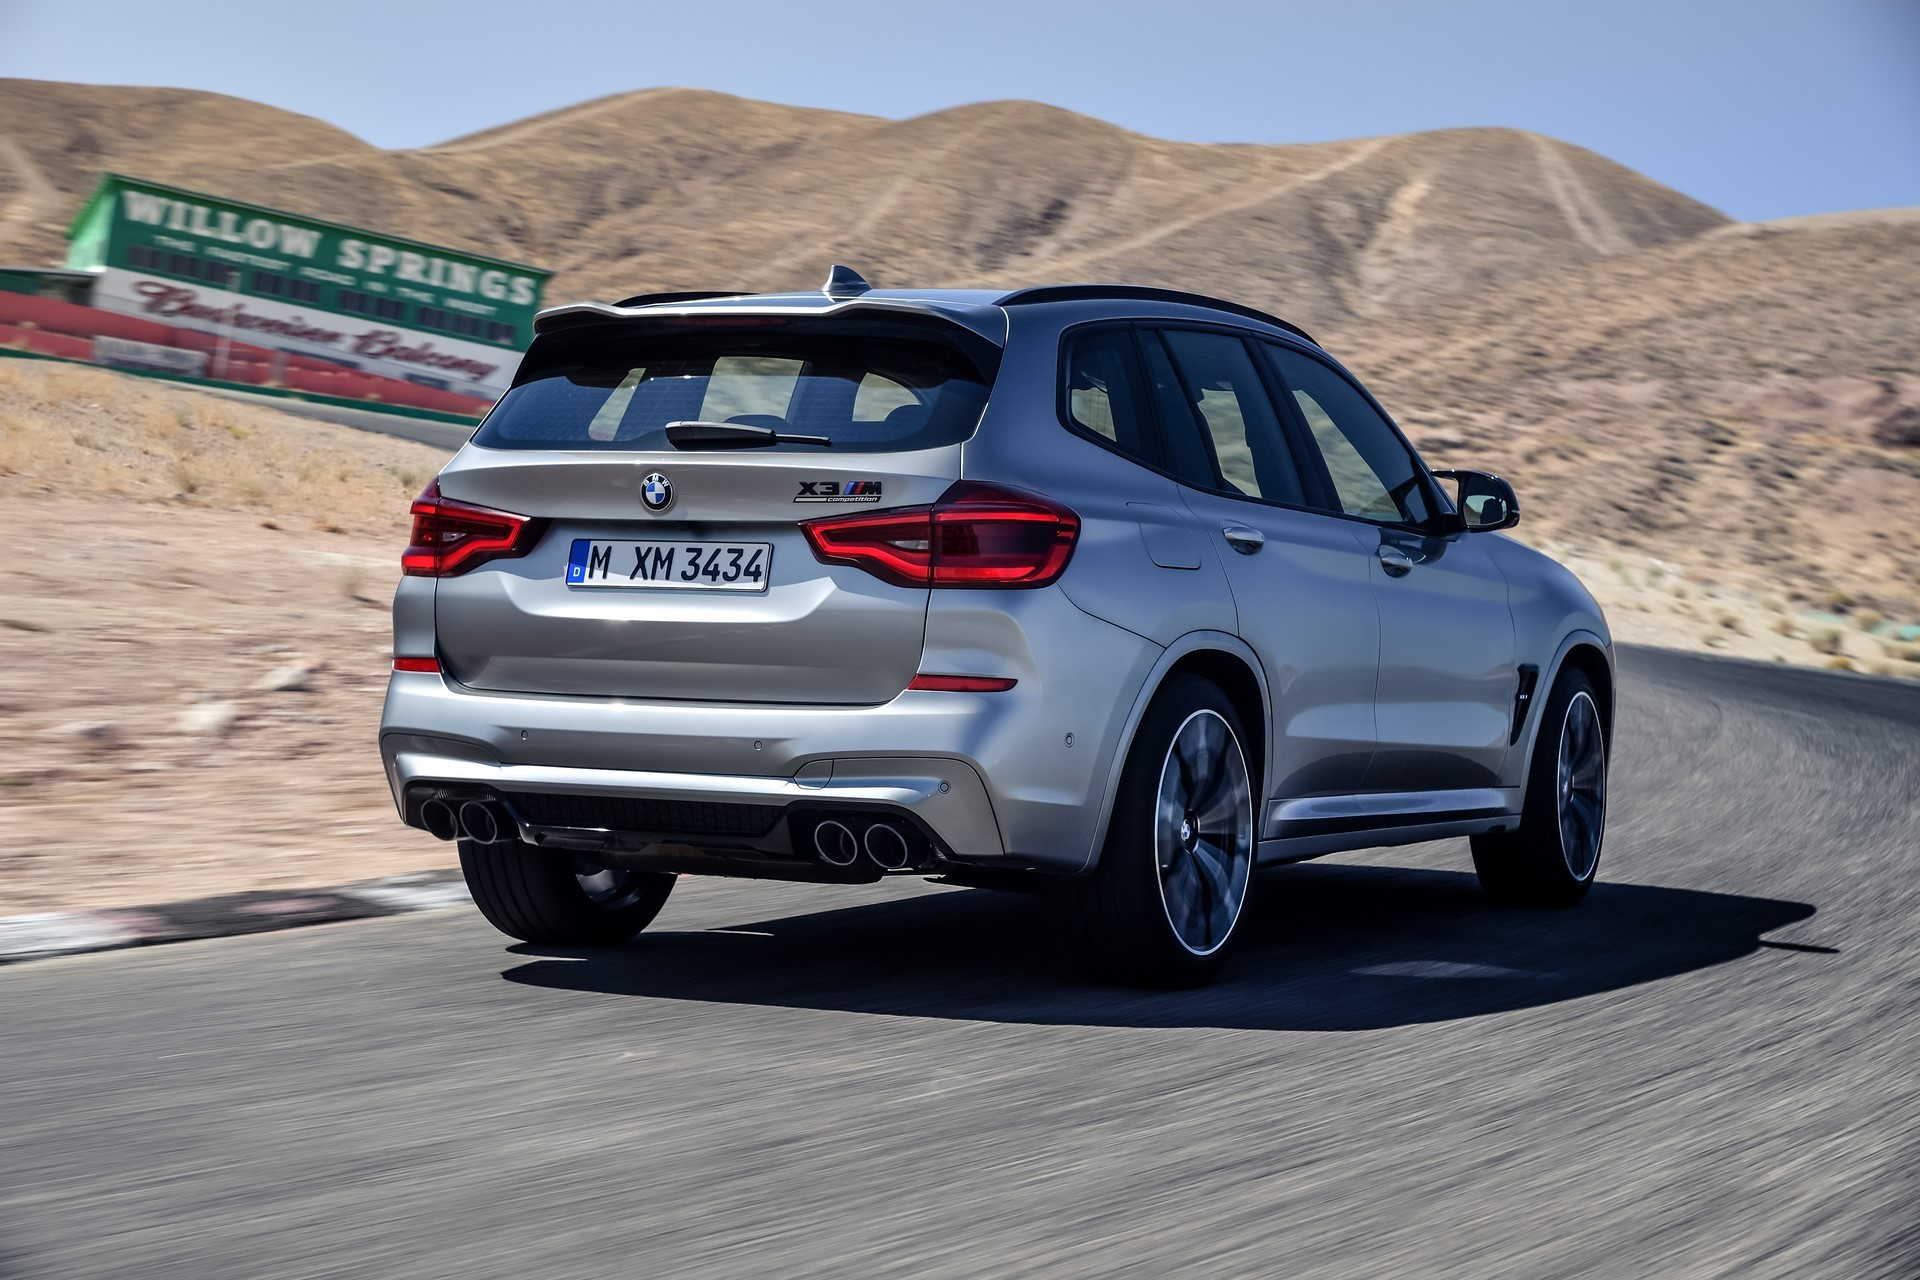 BMW X3 M and X4 M 2019 (16)